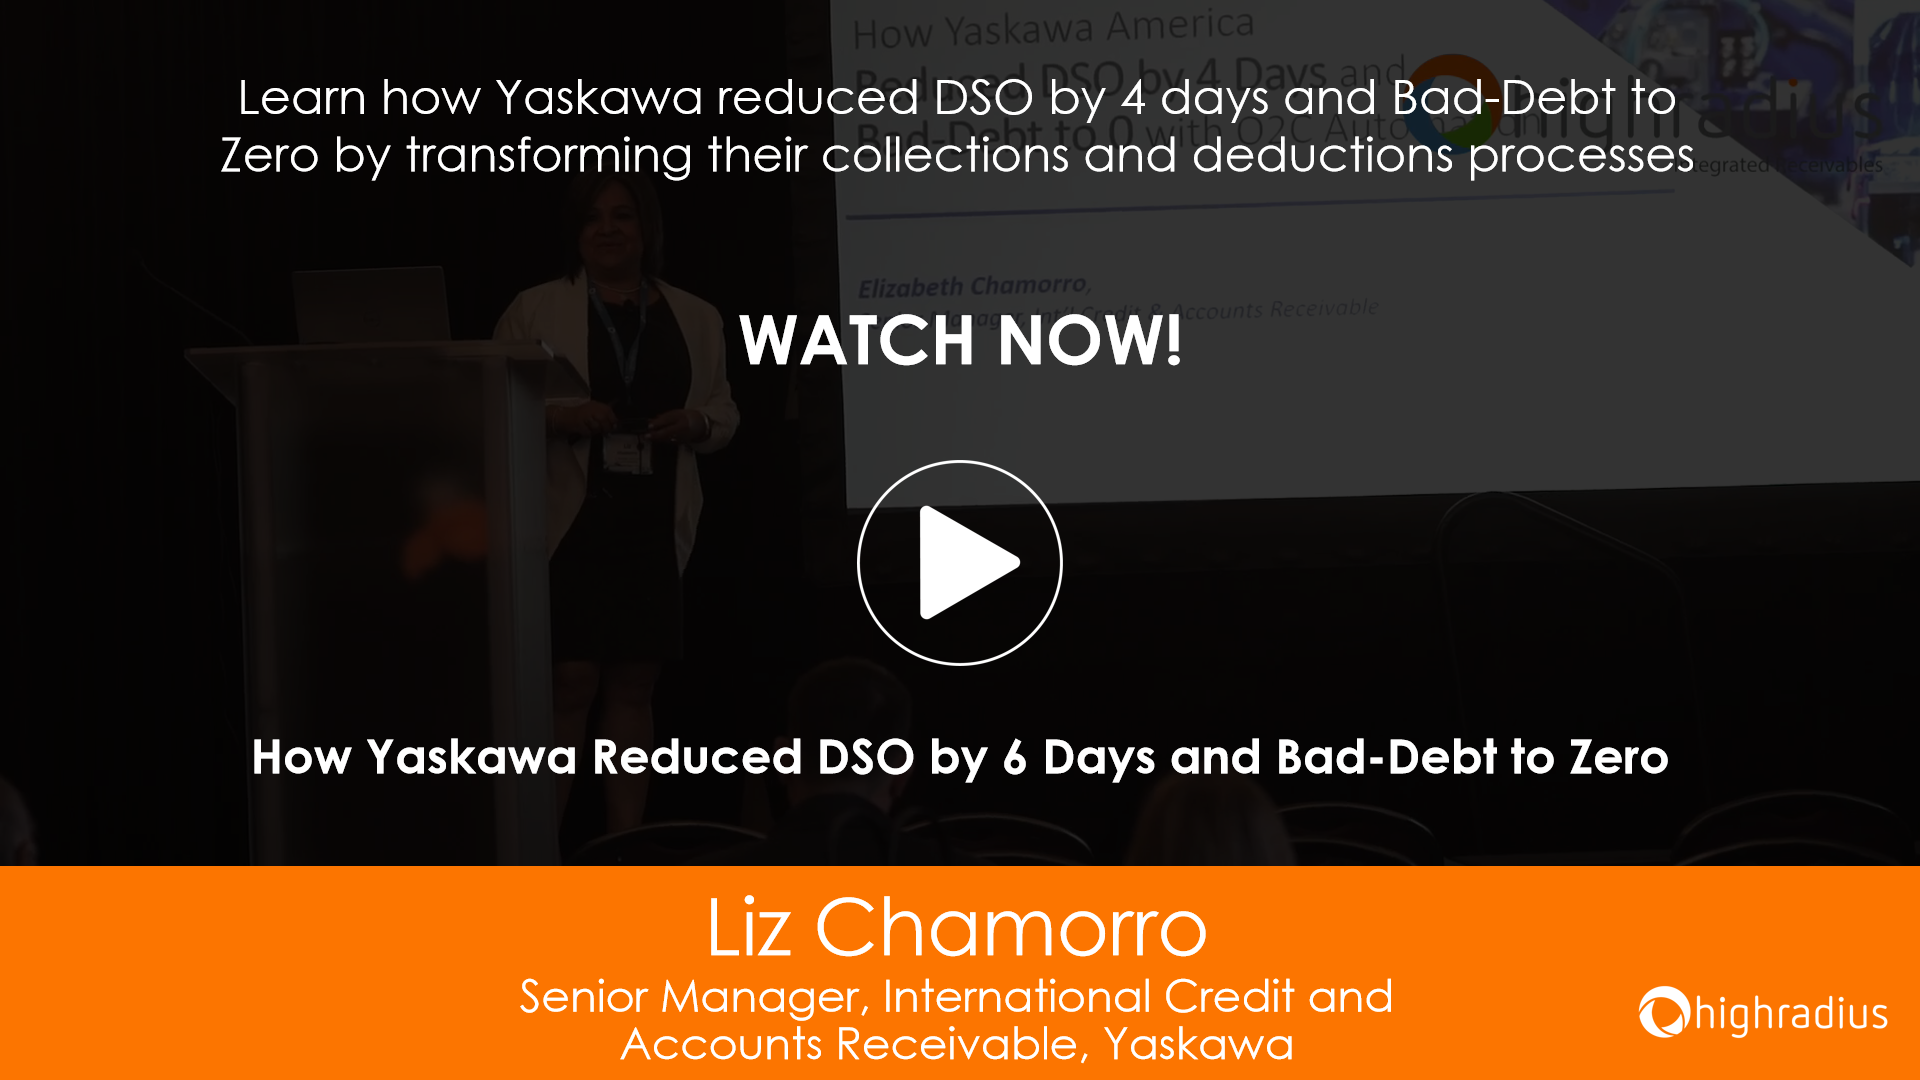 How Yaskawa Reduced DSO by 6 Days and Bad-Debt to Zero